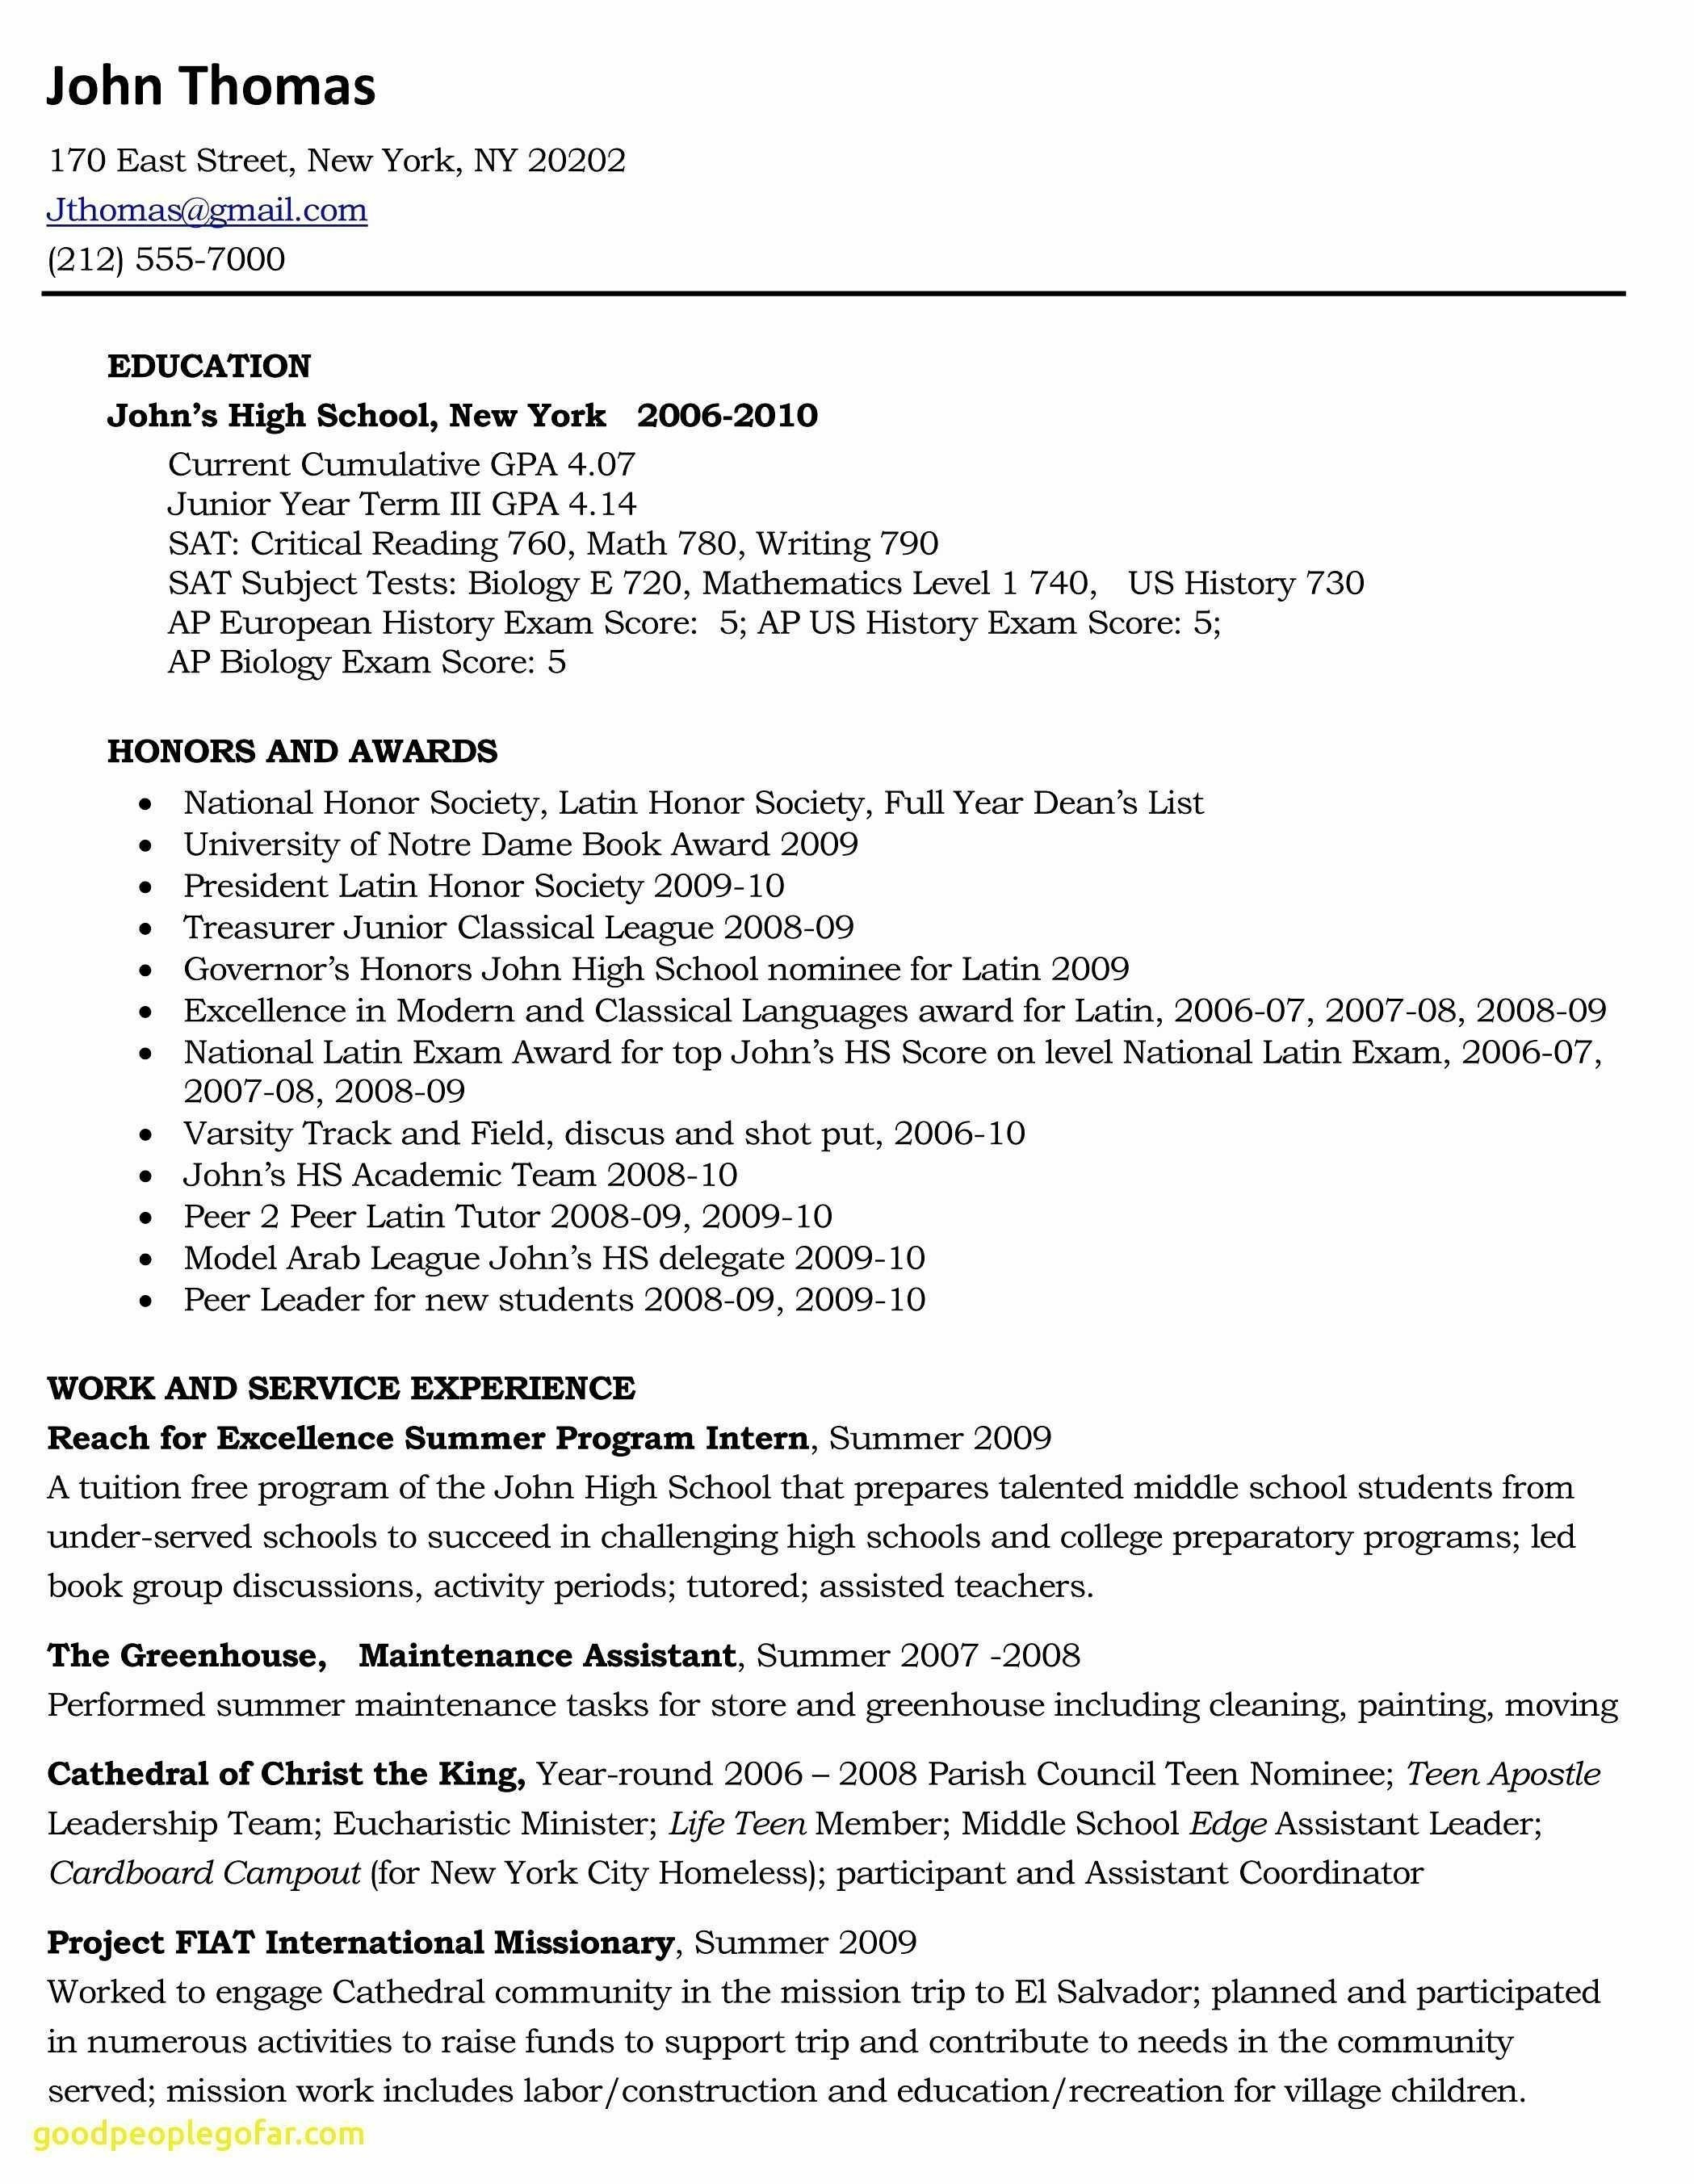 Free Resume Service - Biology Cover Letter New Do A Resume Fresh How to Do A Resume Free